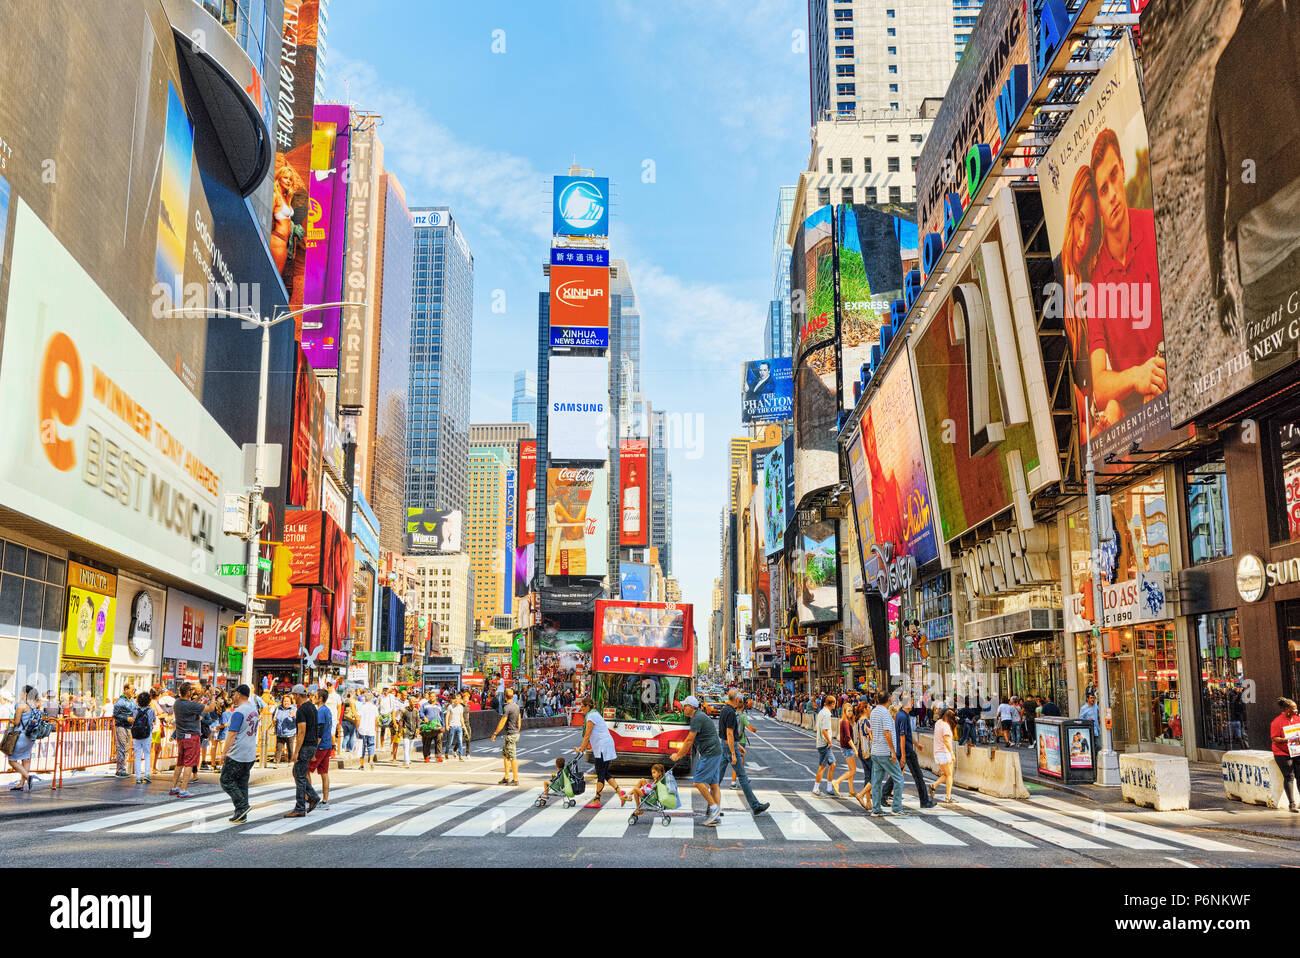 New York, USA- August 14, 2017 :  Times Square-central and main square of New York. Street, cars, people and tourists on it. - Stock Image